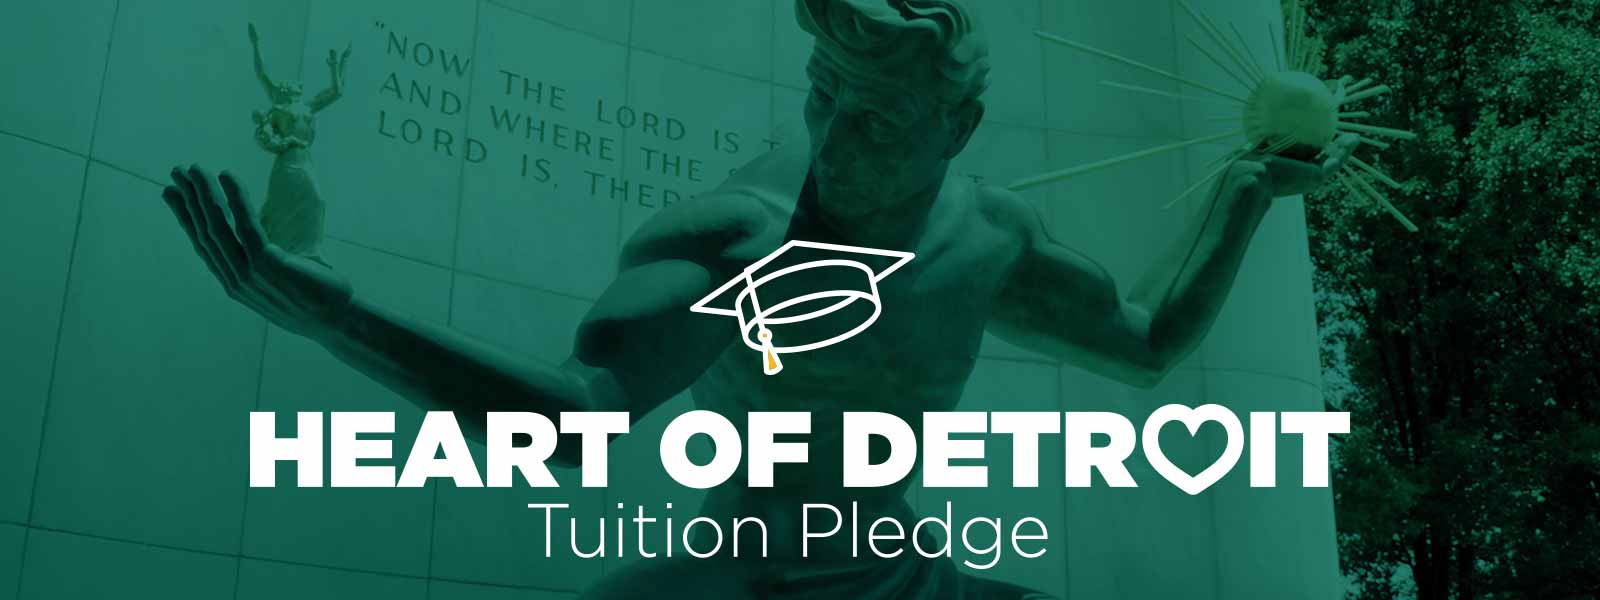 Heart of Detroit Tuition Pledge